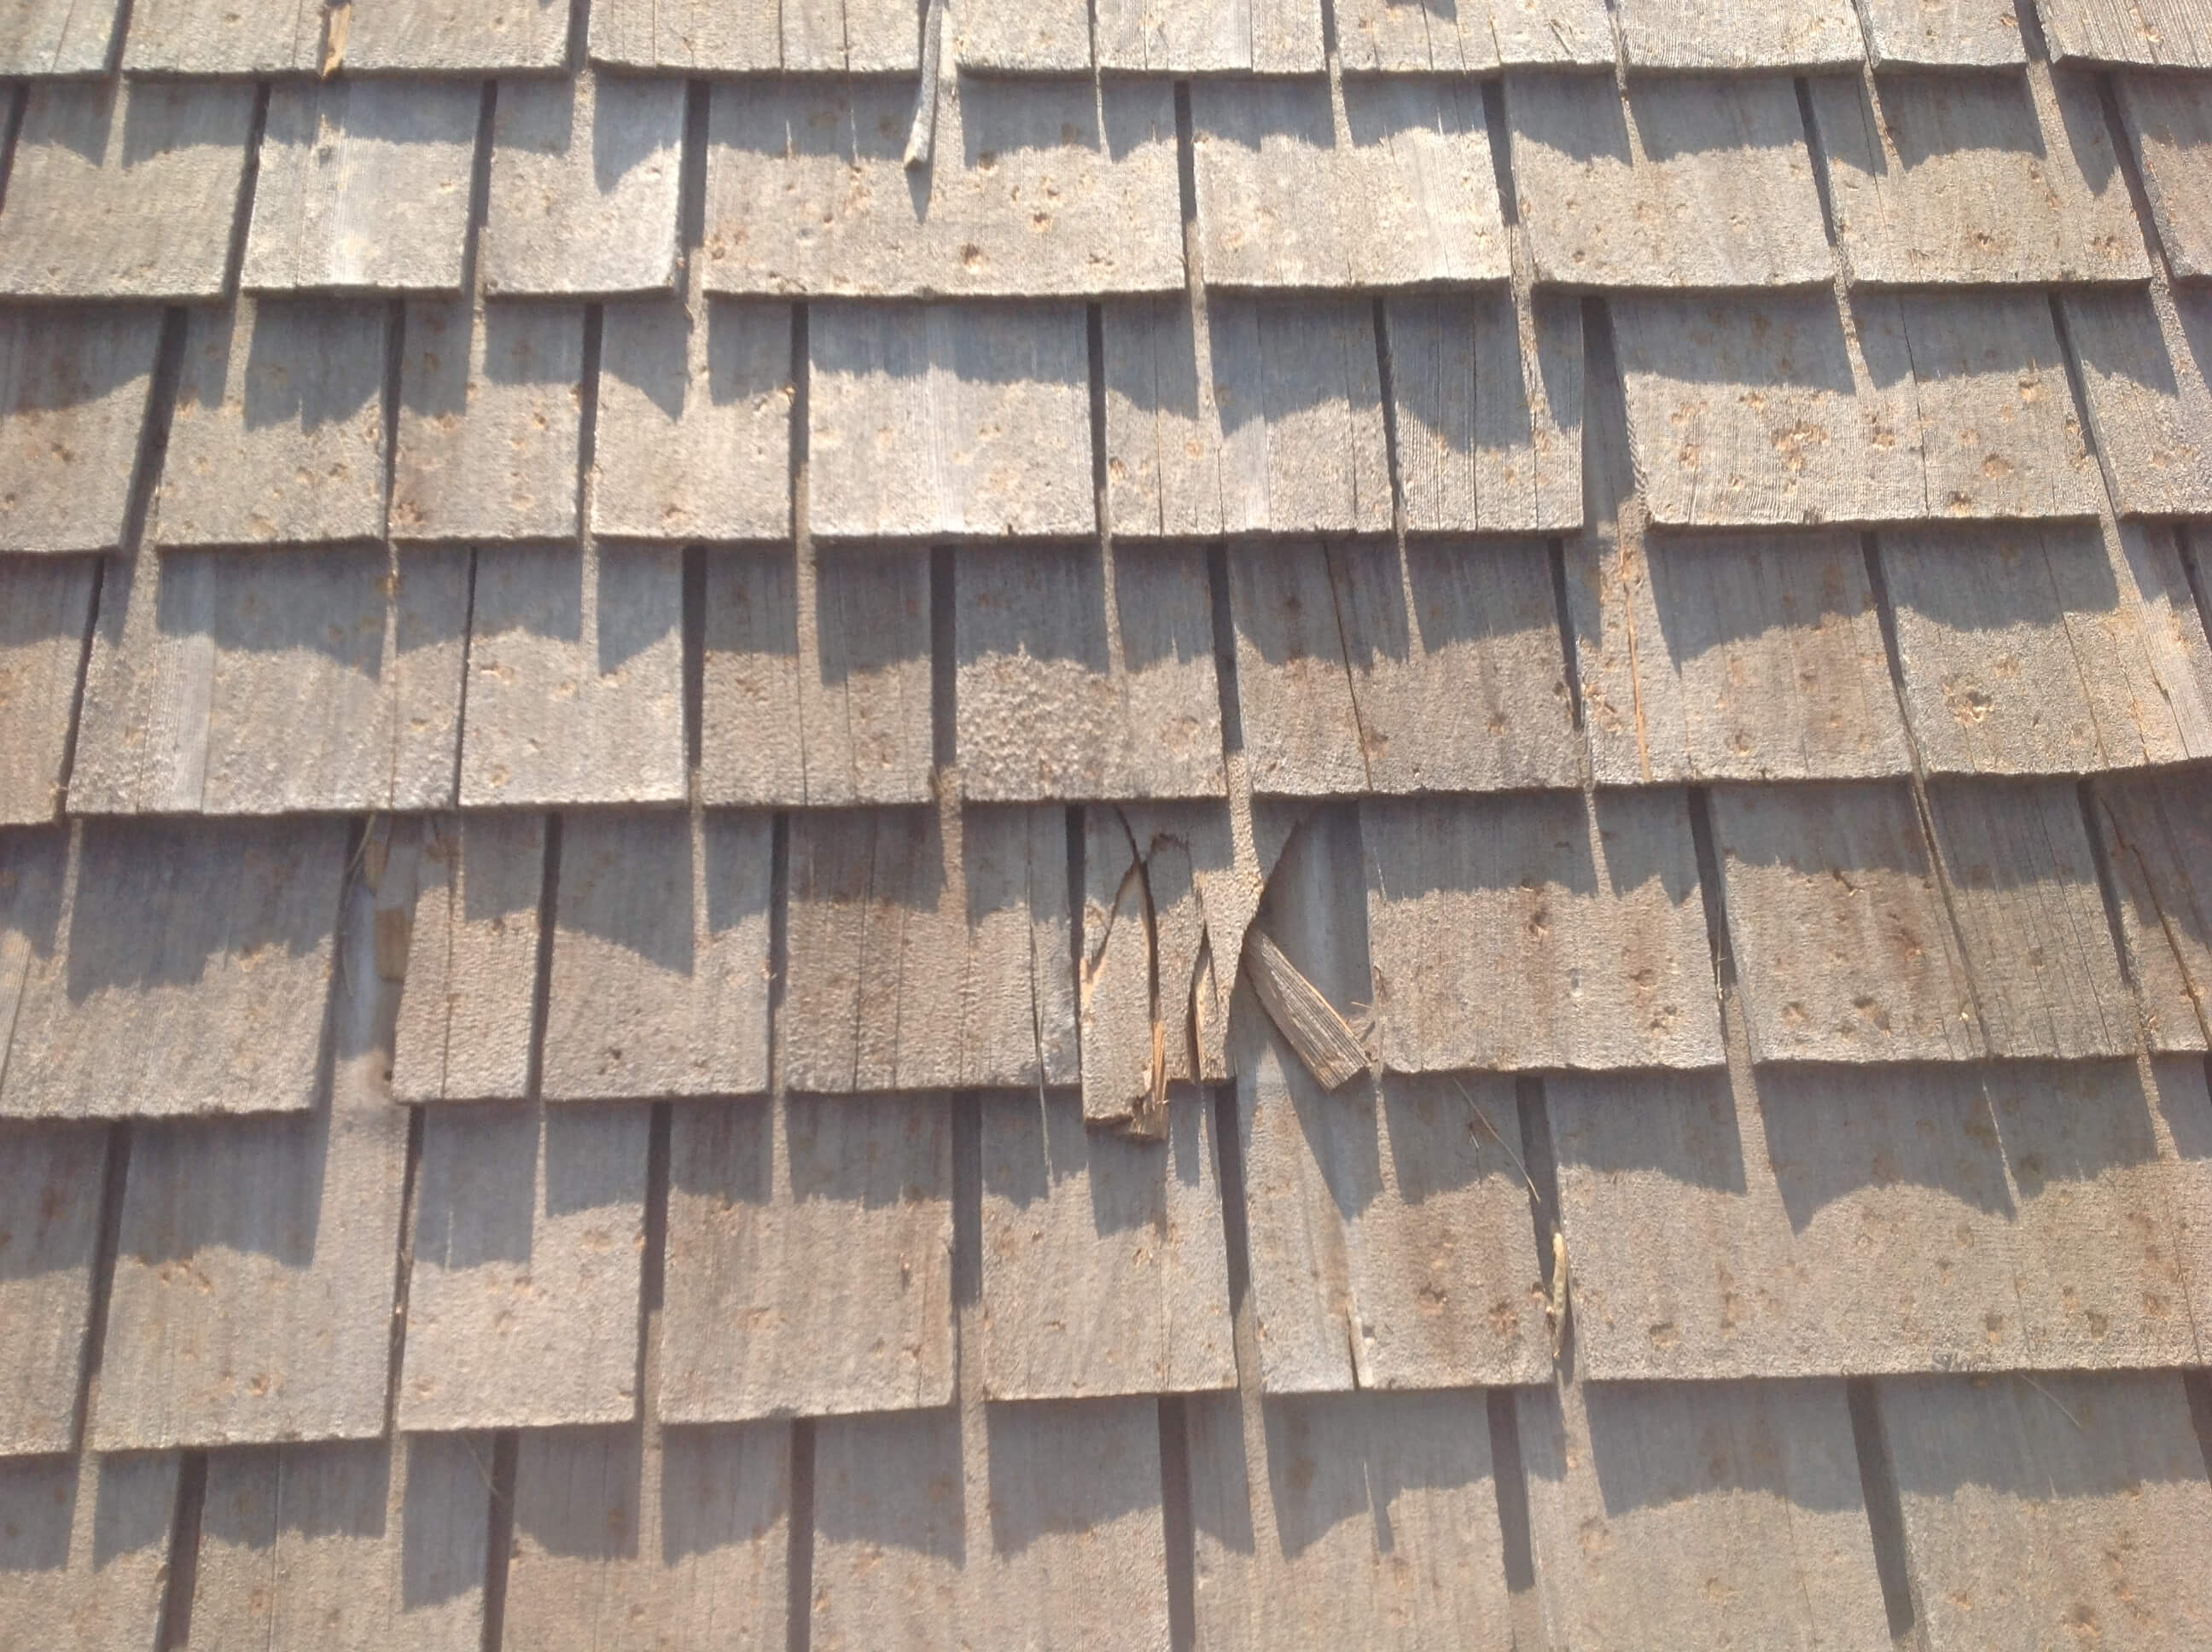 Cedar Shake Roof Damage